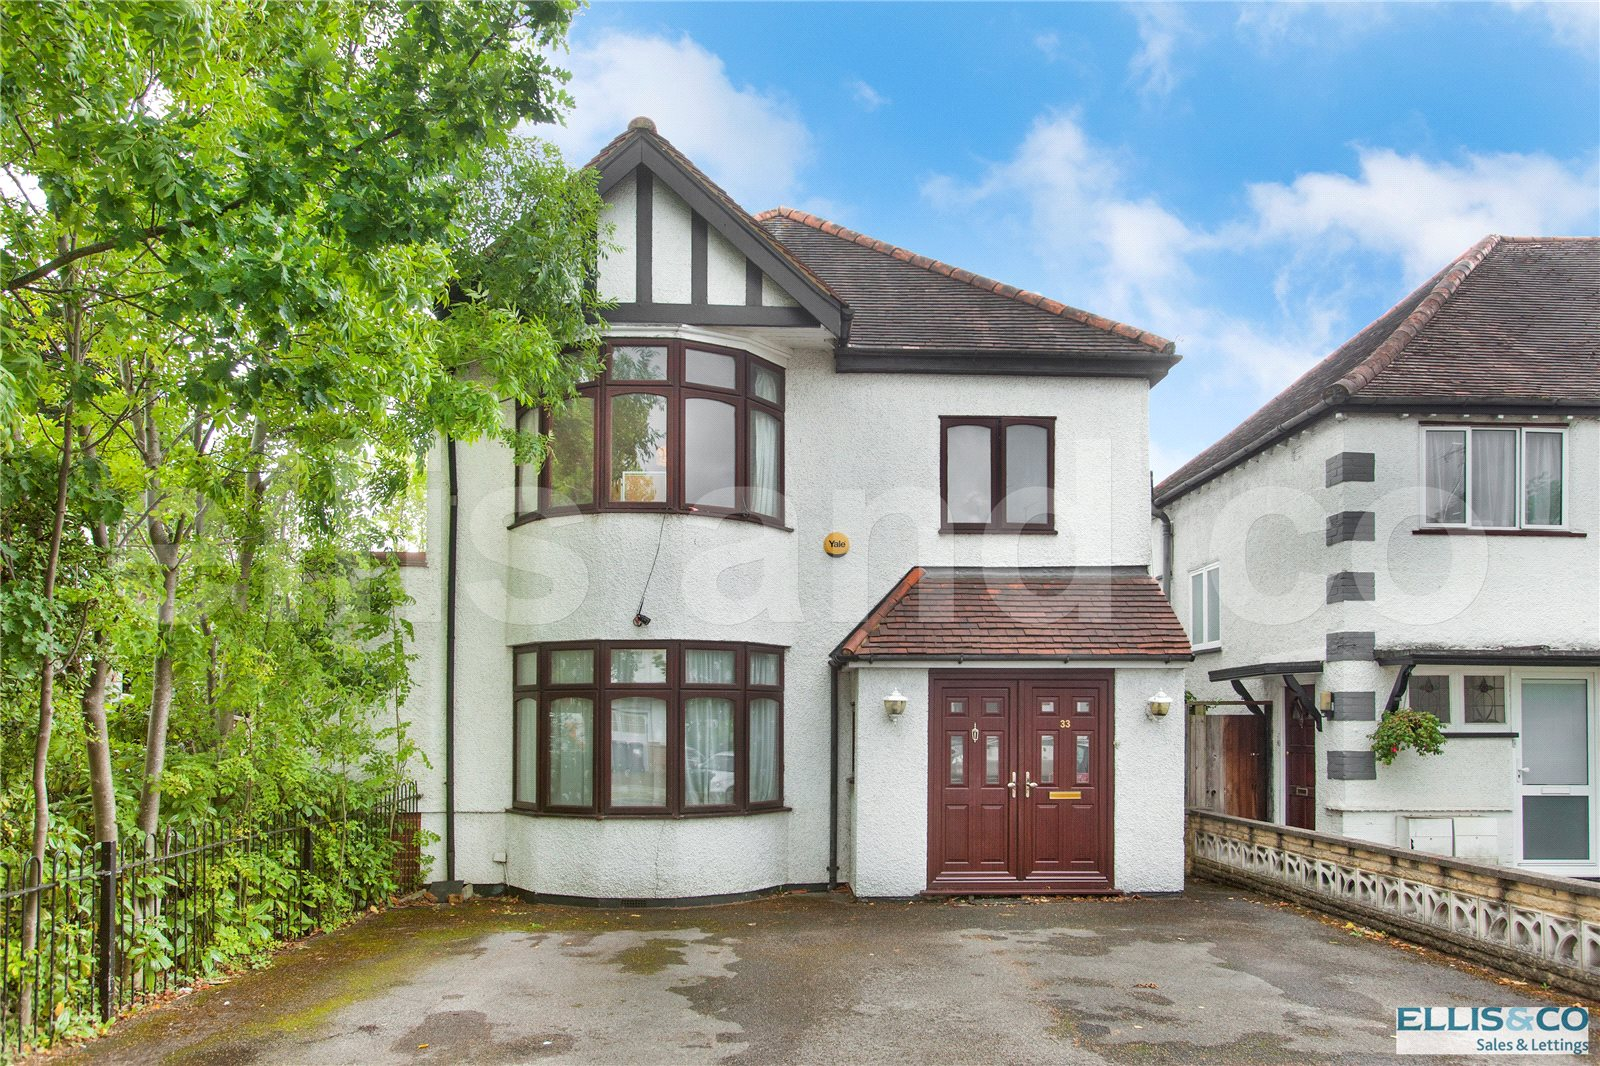 6 Bedrooms Detached House for sale in Goodwyn Avenue Mill Hill London NW7